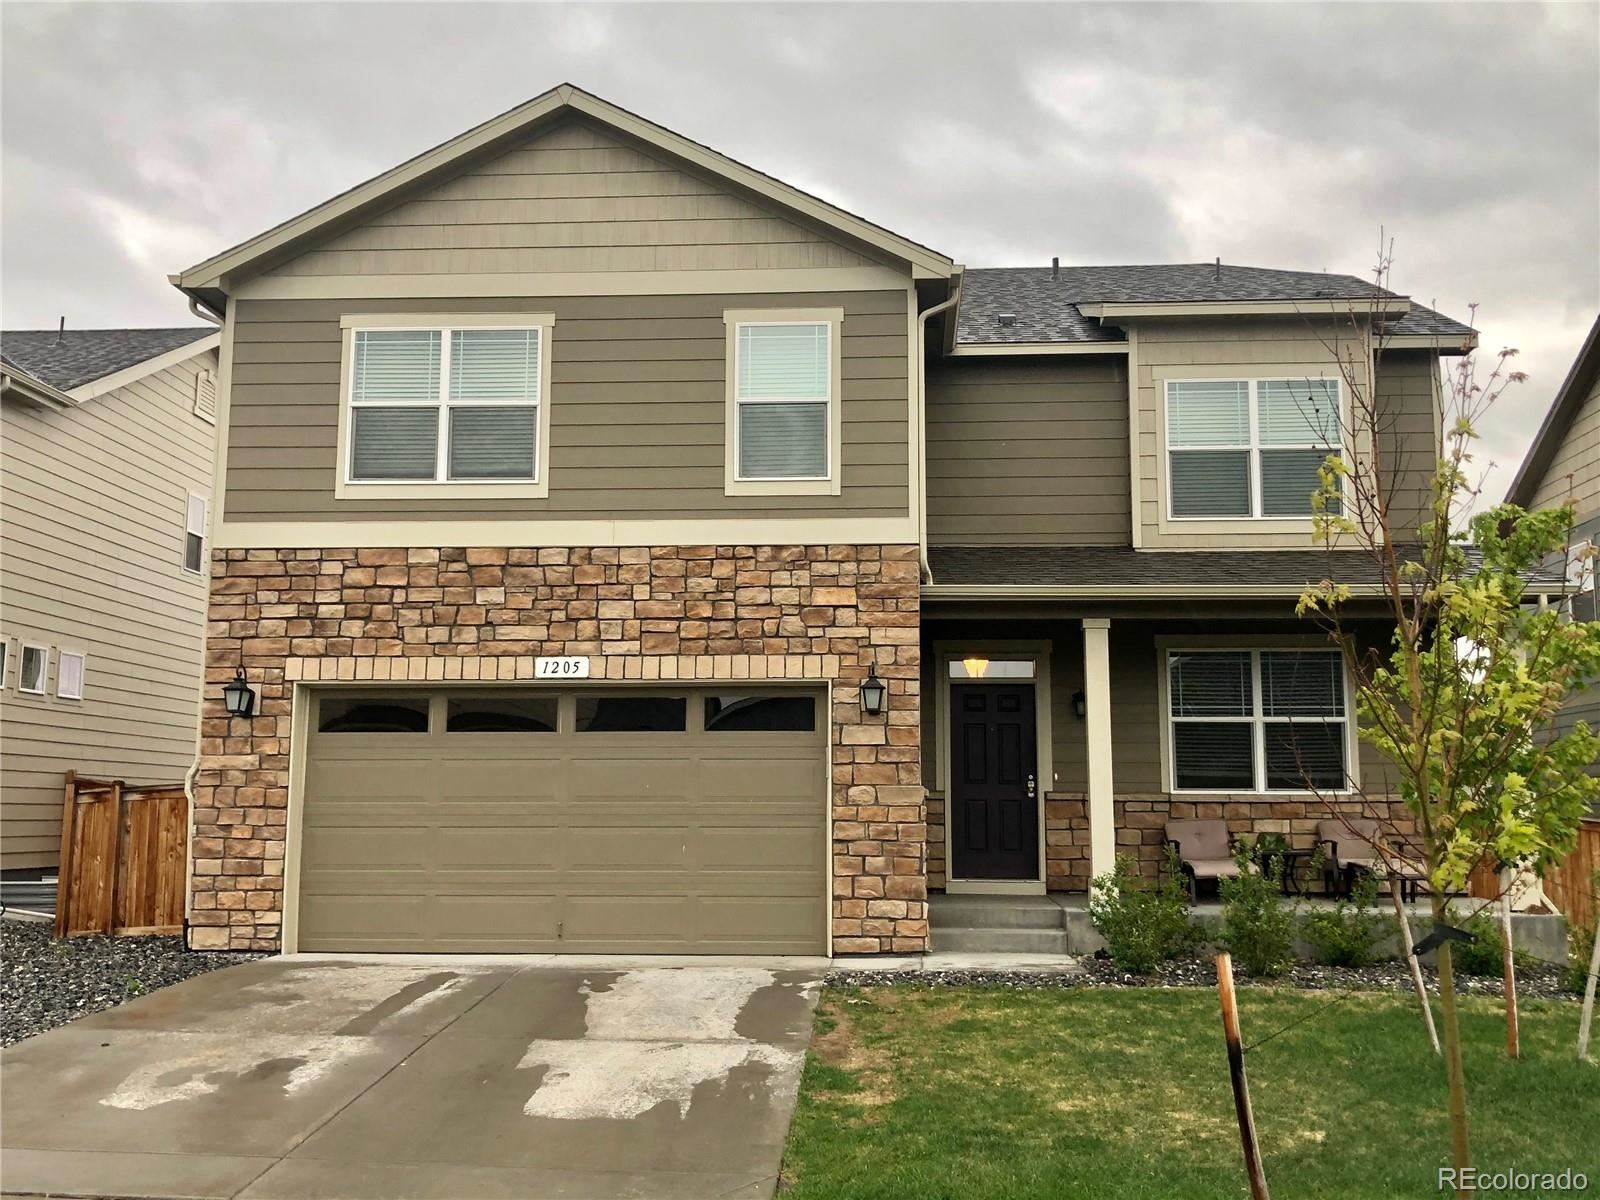 1205 W 170th Place, Broomfield, CO 80023 - #: 5234355